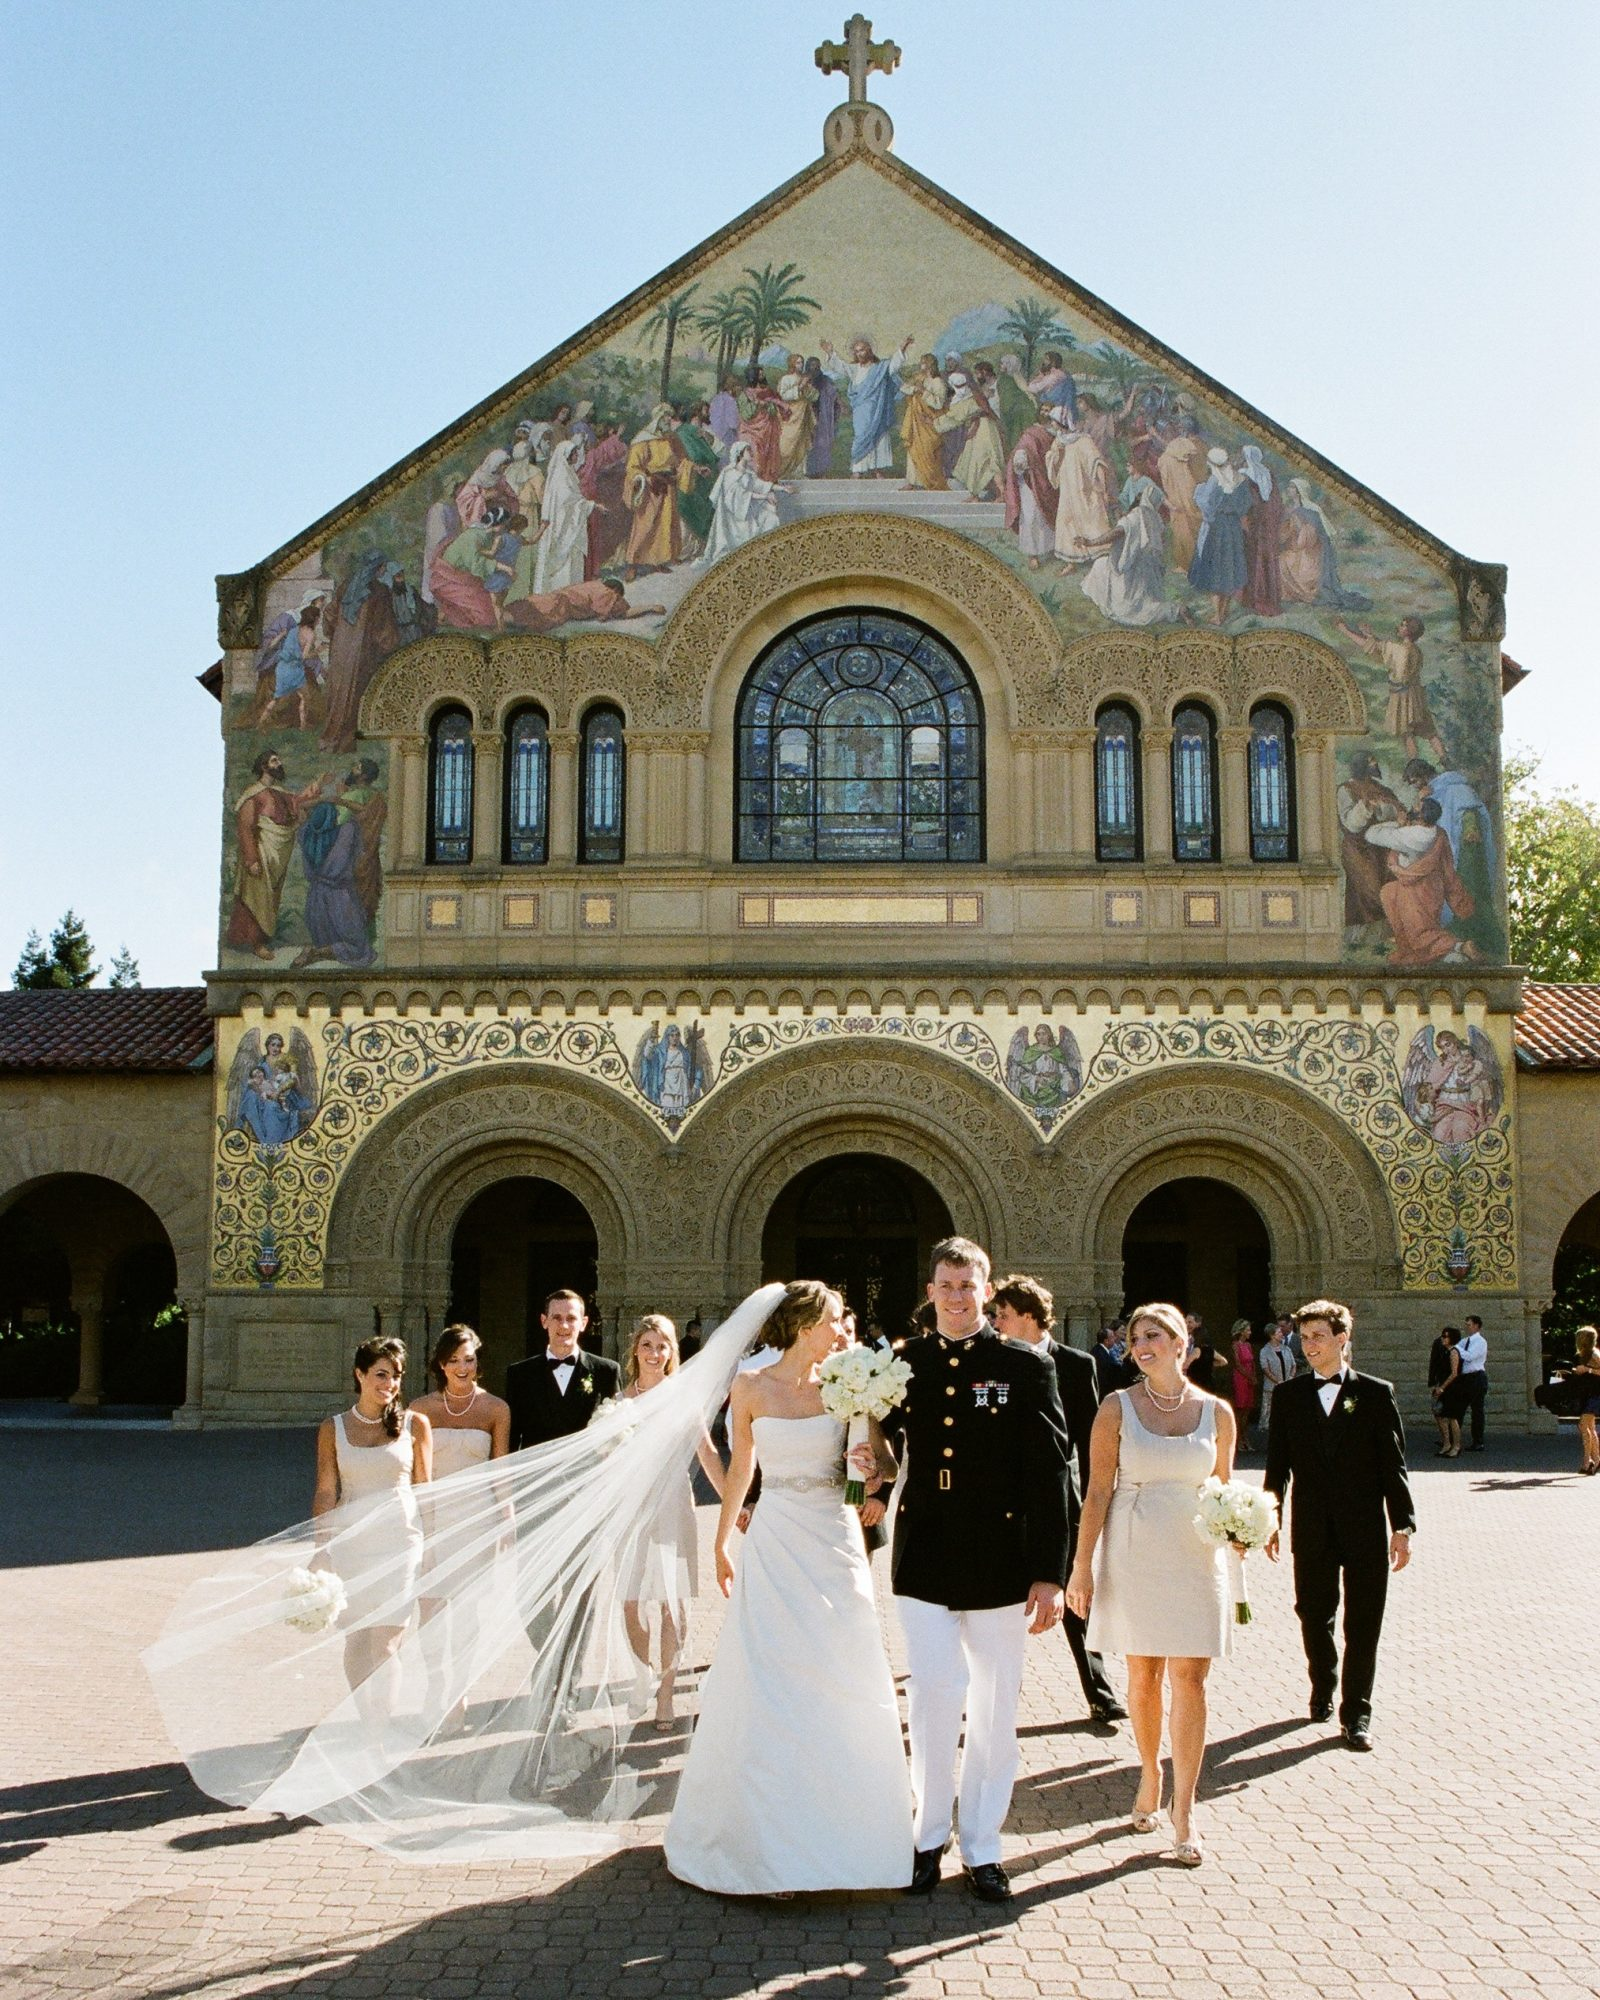 collegeweddingvenues-stanford-exterior-0615.jpg